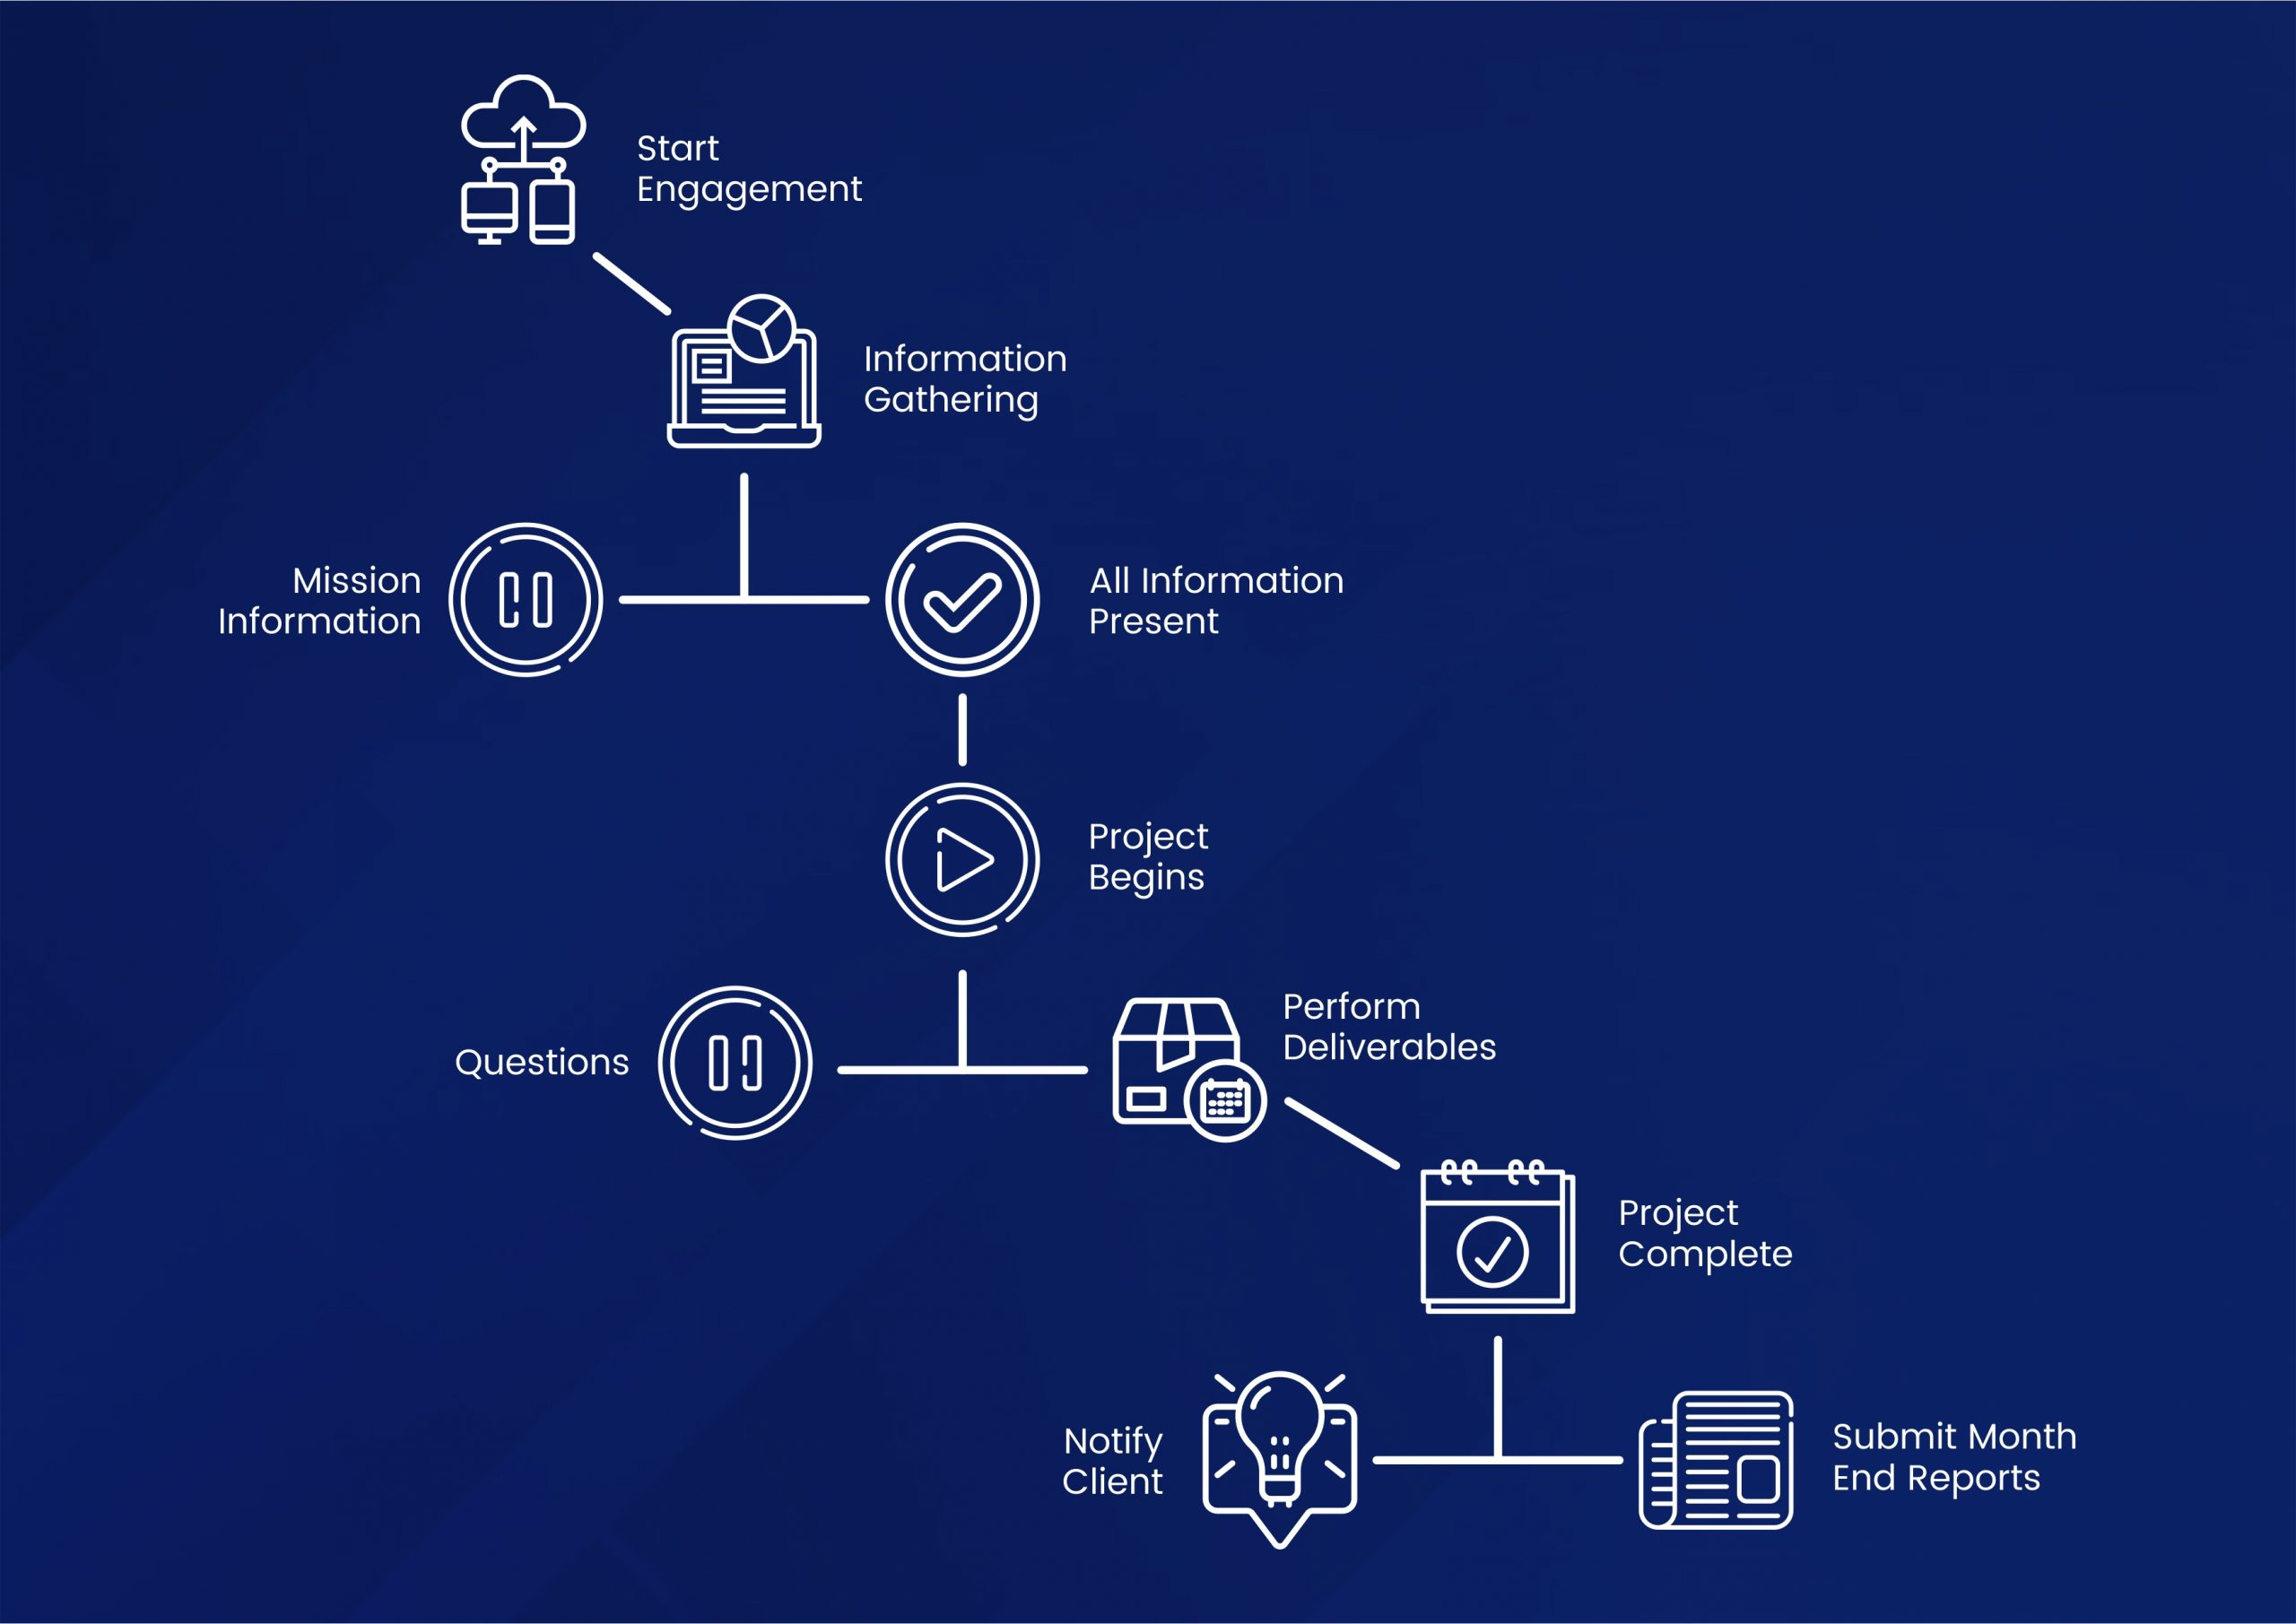 Steph's Bookkeeping client process graphic in blue